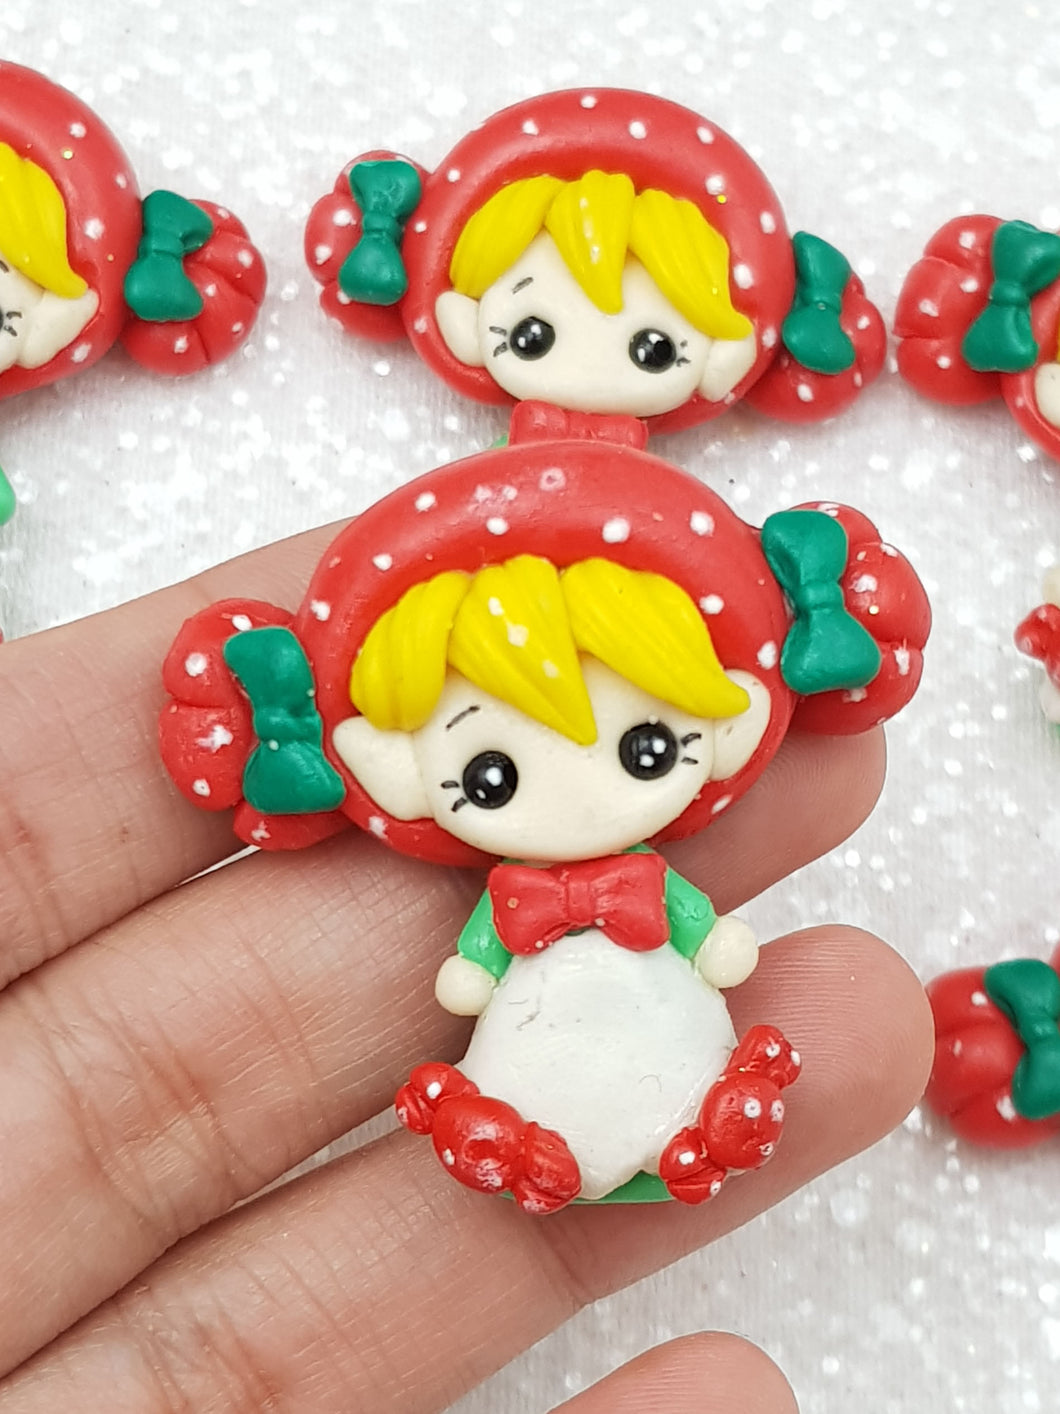 clay Charm Embellishment - New Christmas Candy Girl - Crafty Mood